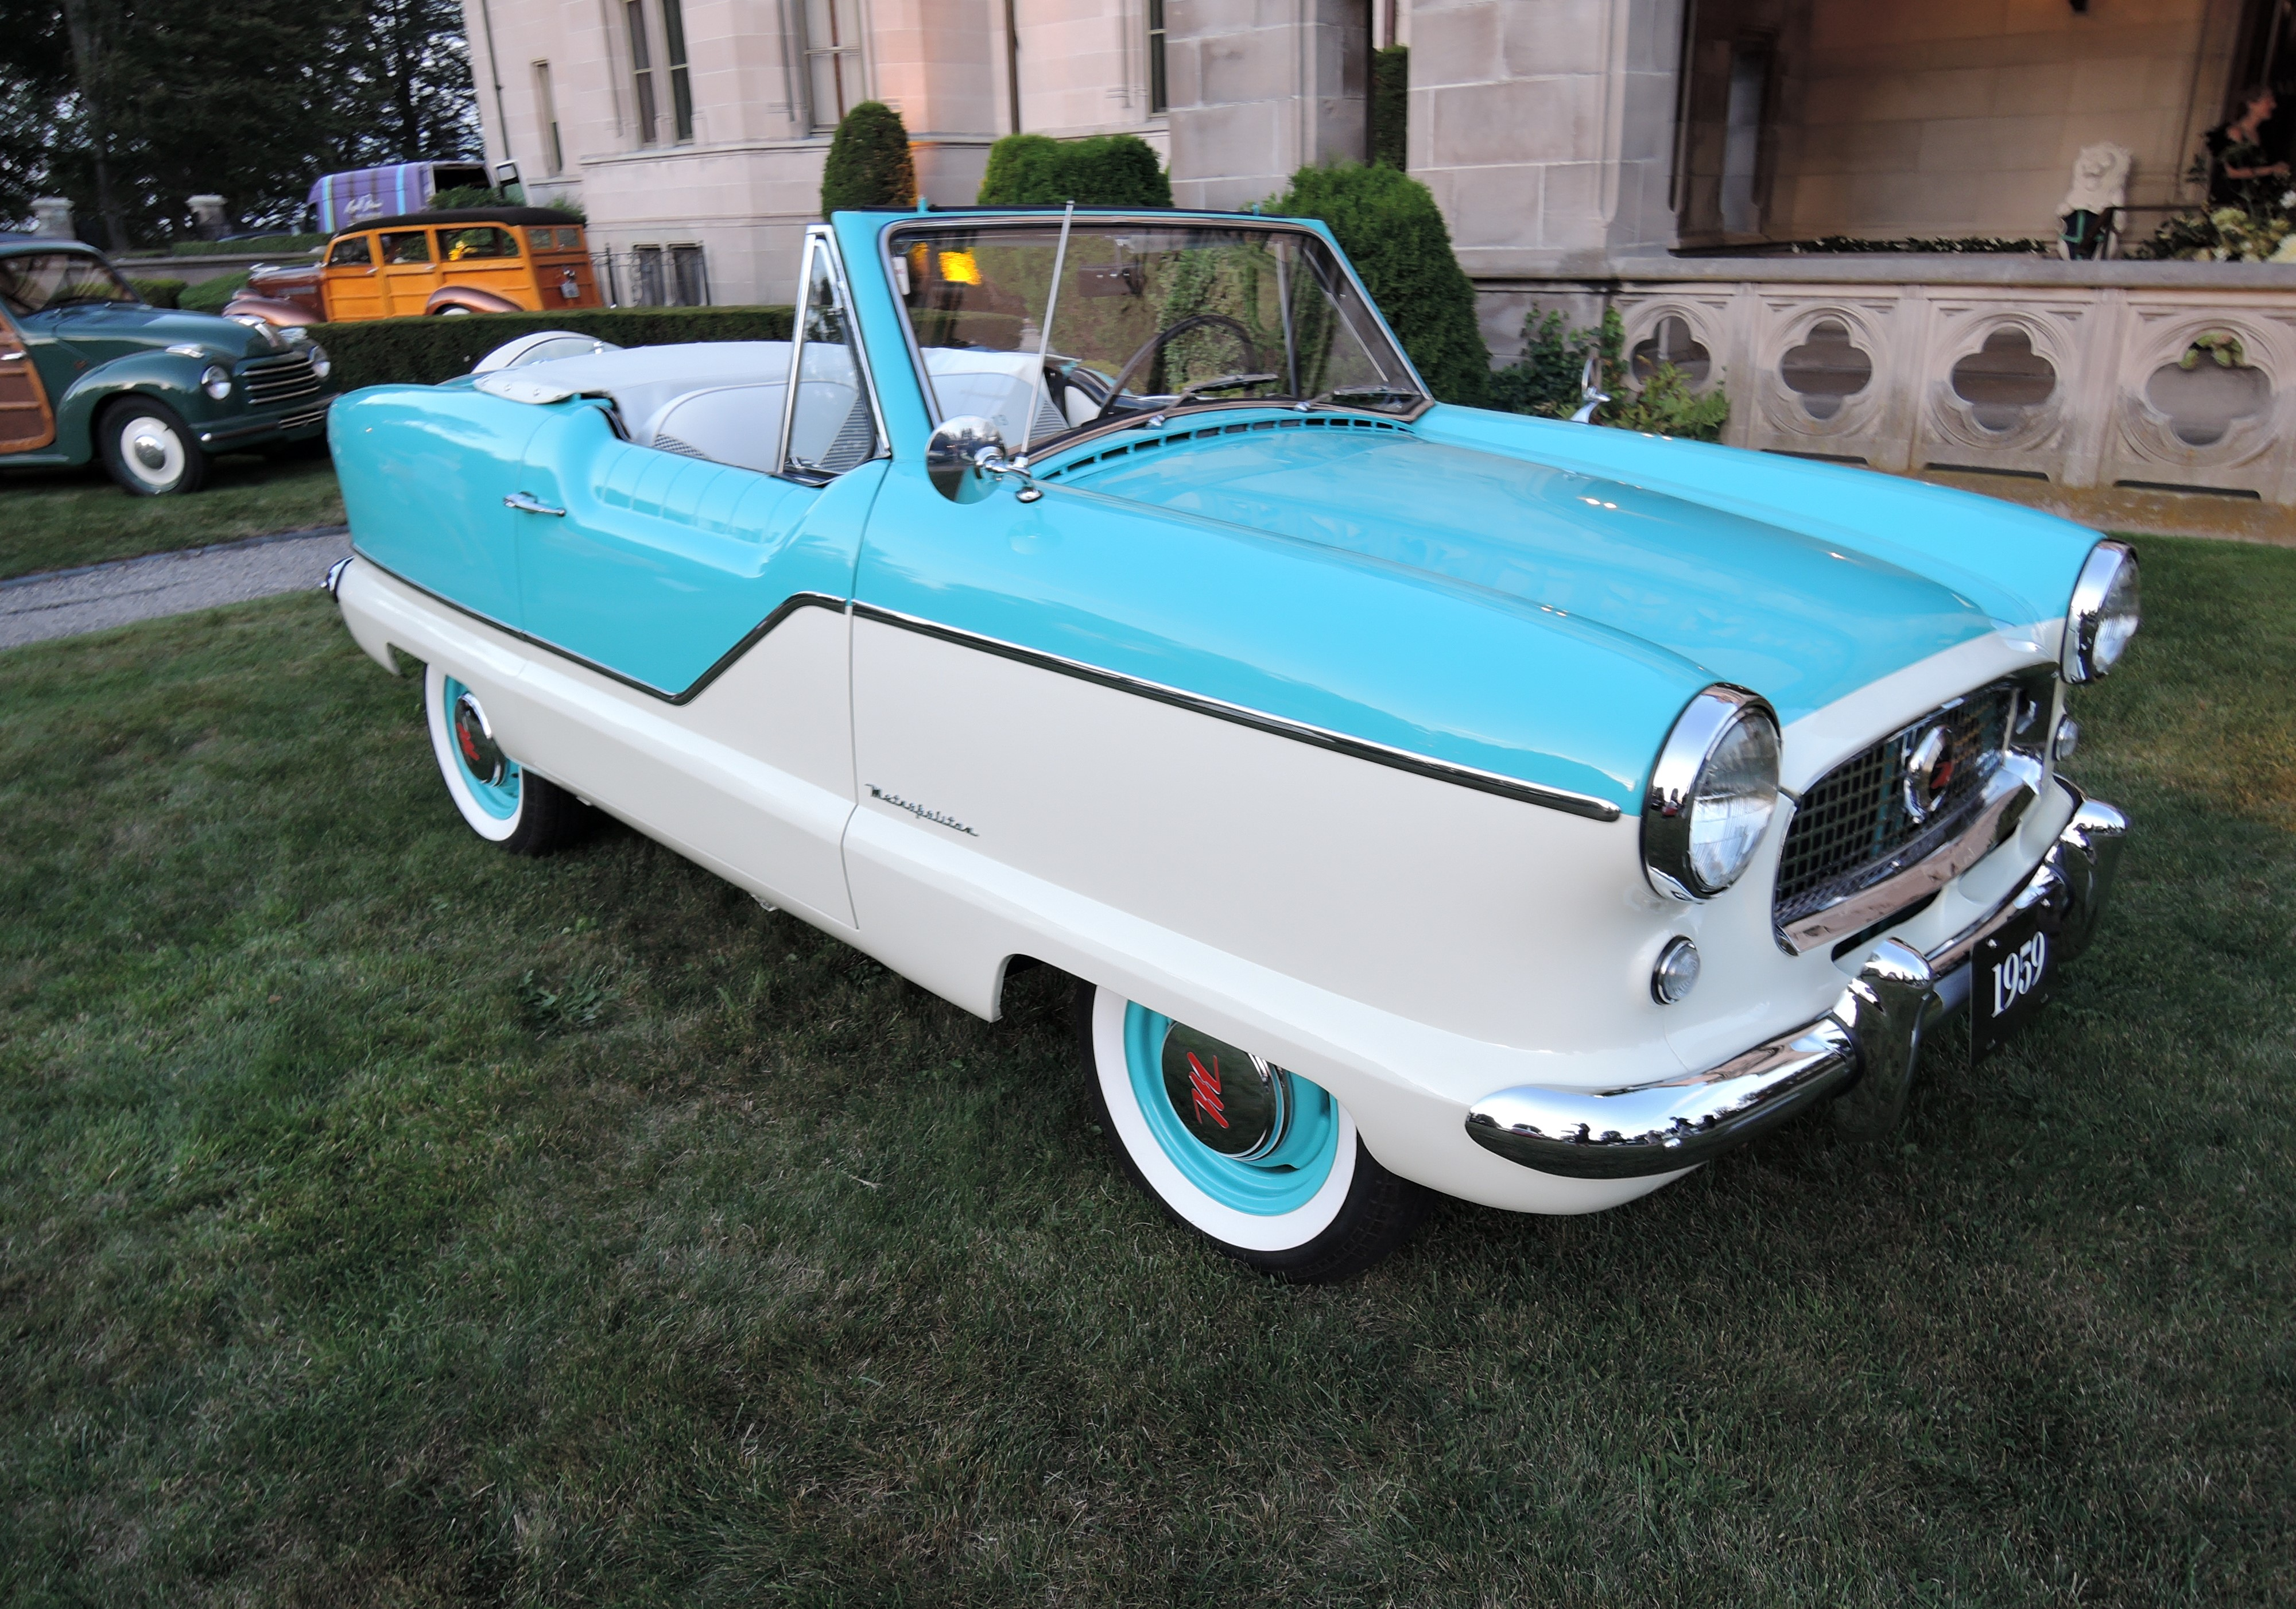 berkshire blue/ frost white 1959 Nash Metroploitan Convertible - Audrain Auto Museum Gala 2017